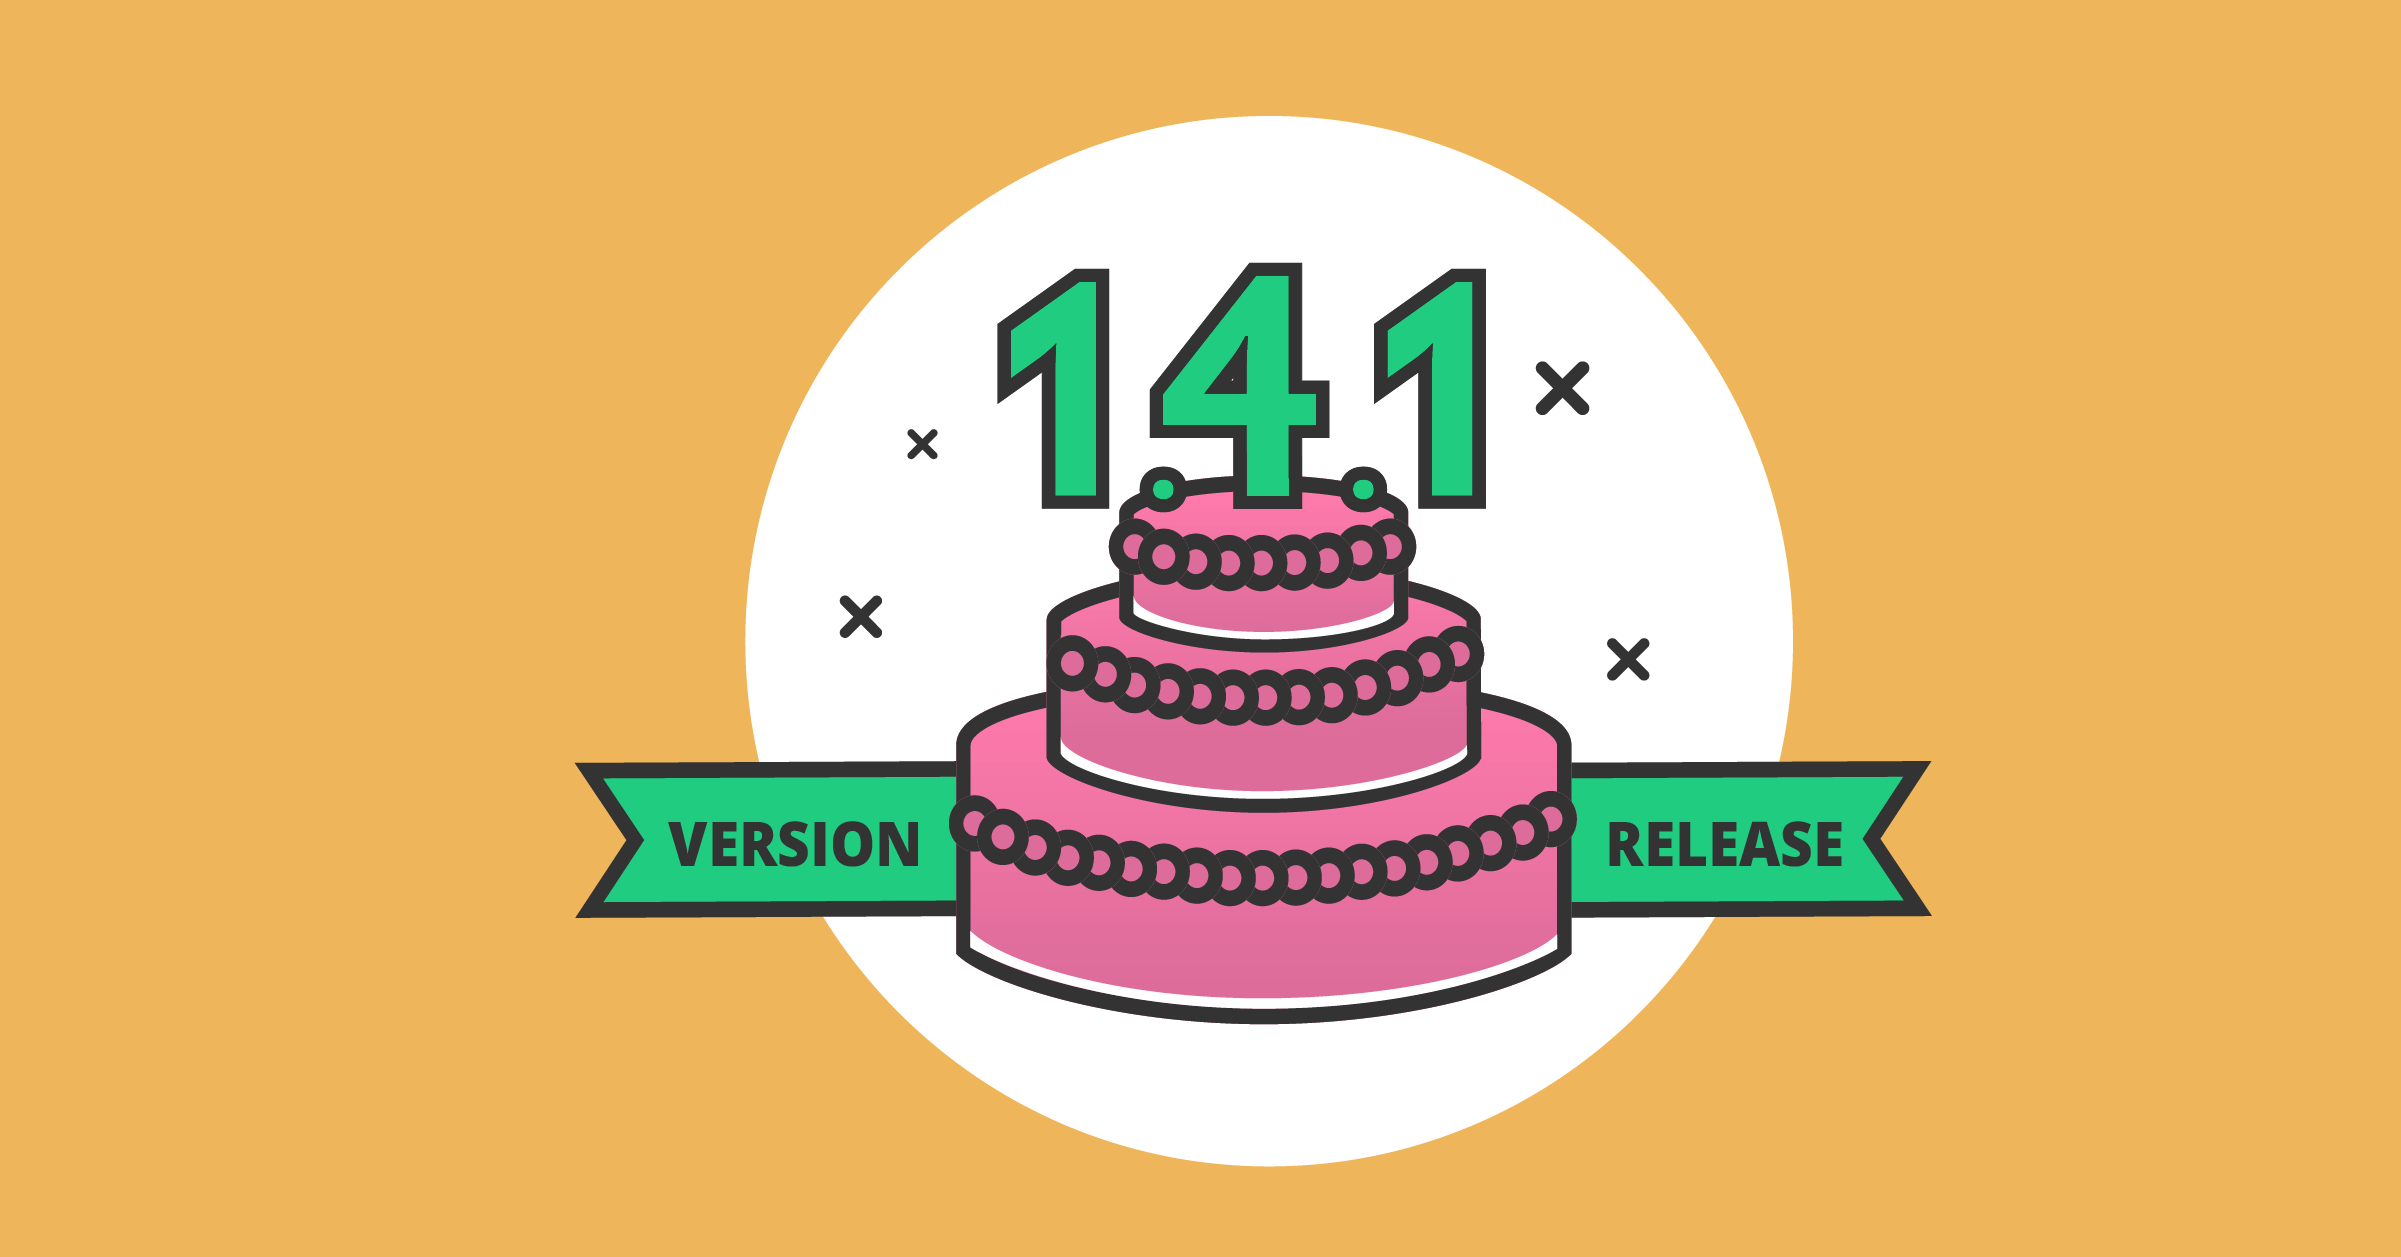 New release: UTM-based content, shortcode usage in titles, DKI, and more